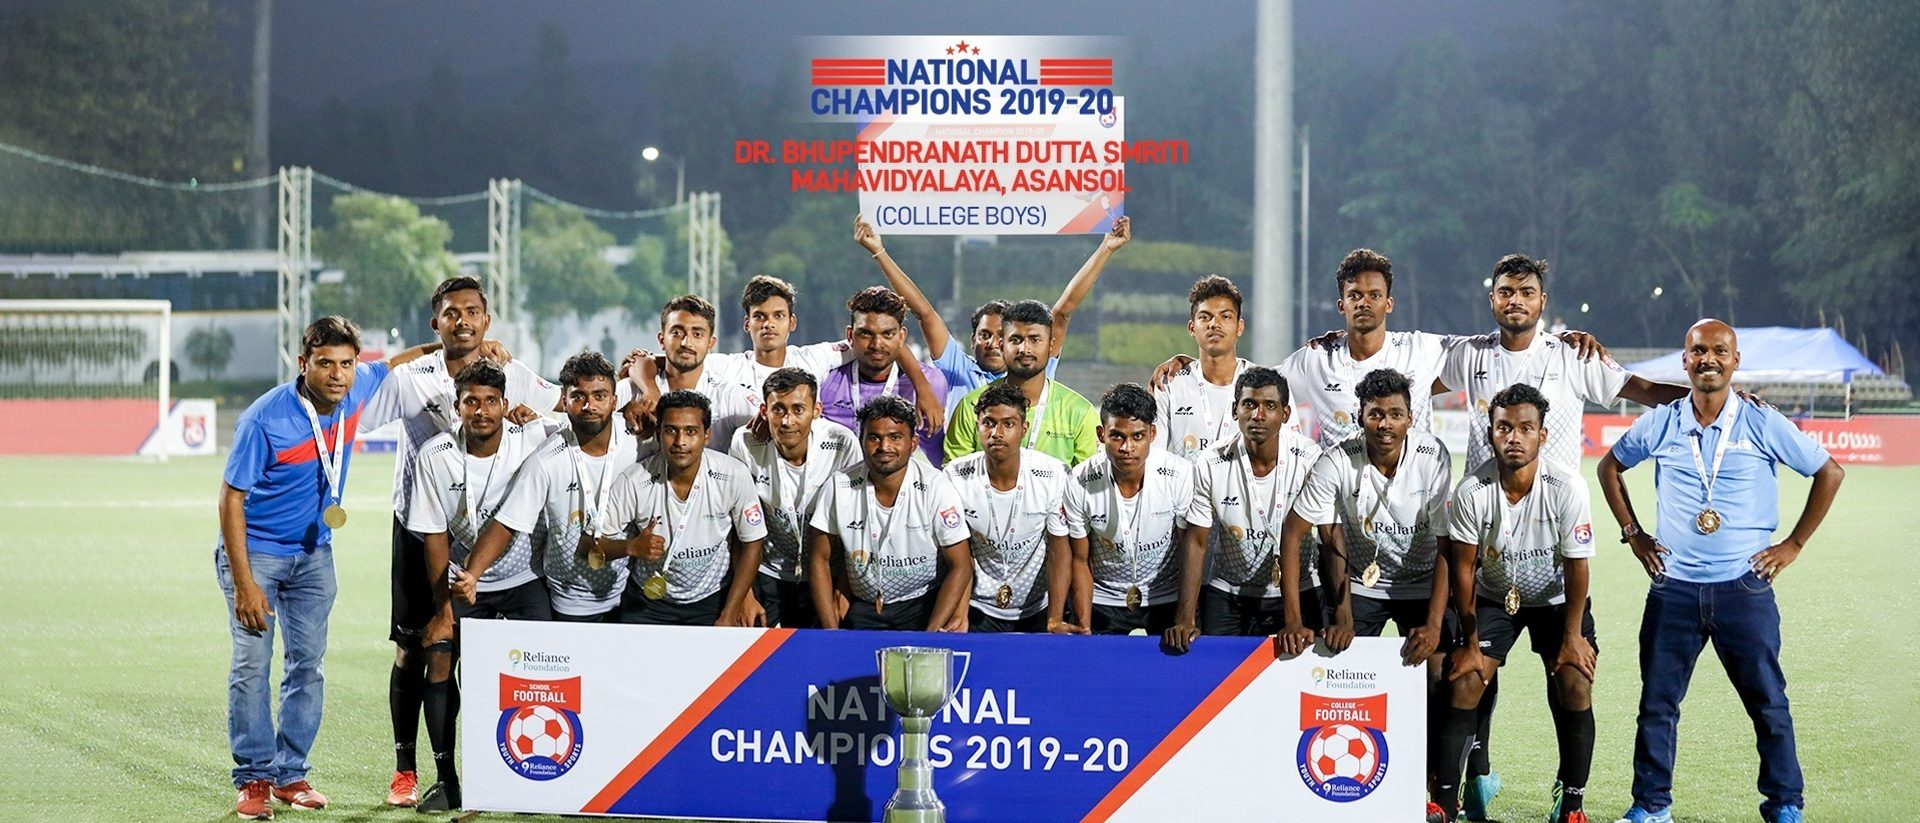 College Boys: DBDS Mahavidyalaya thump in the goals en route to the Title